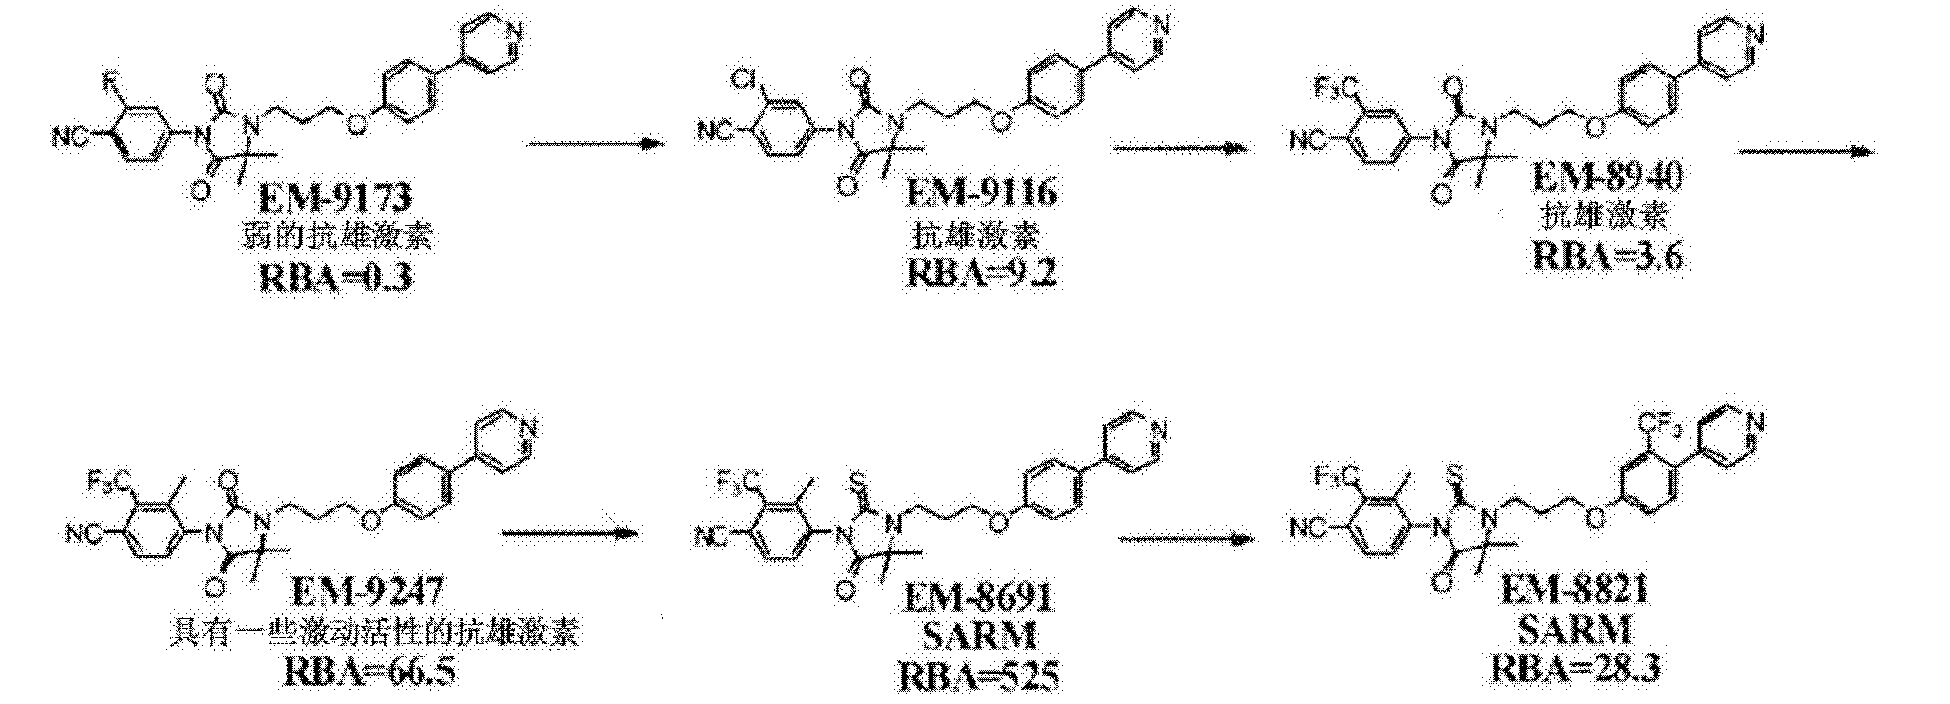 CN105873917A - Non-steroidal antiandrogens and selective androgen